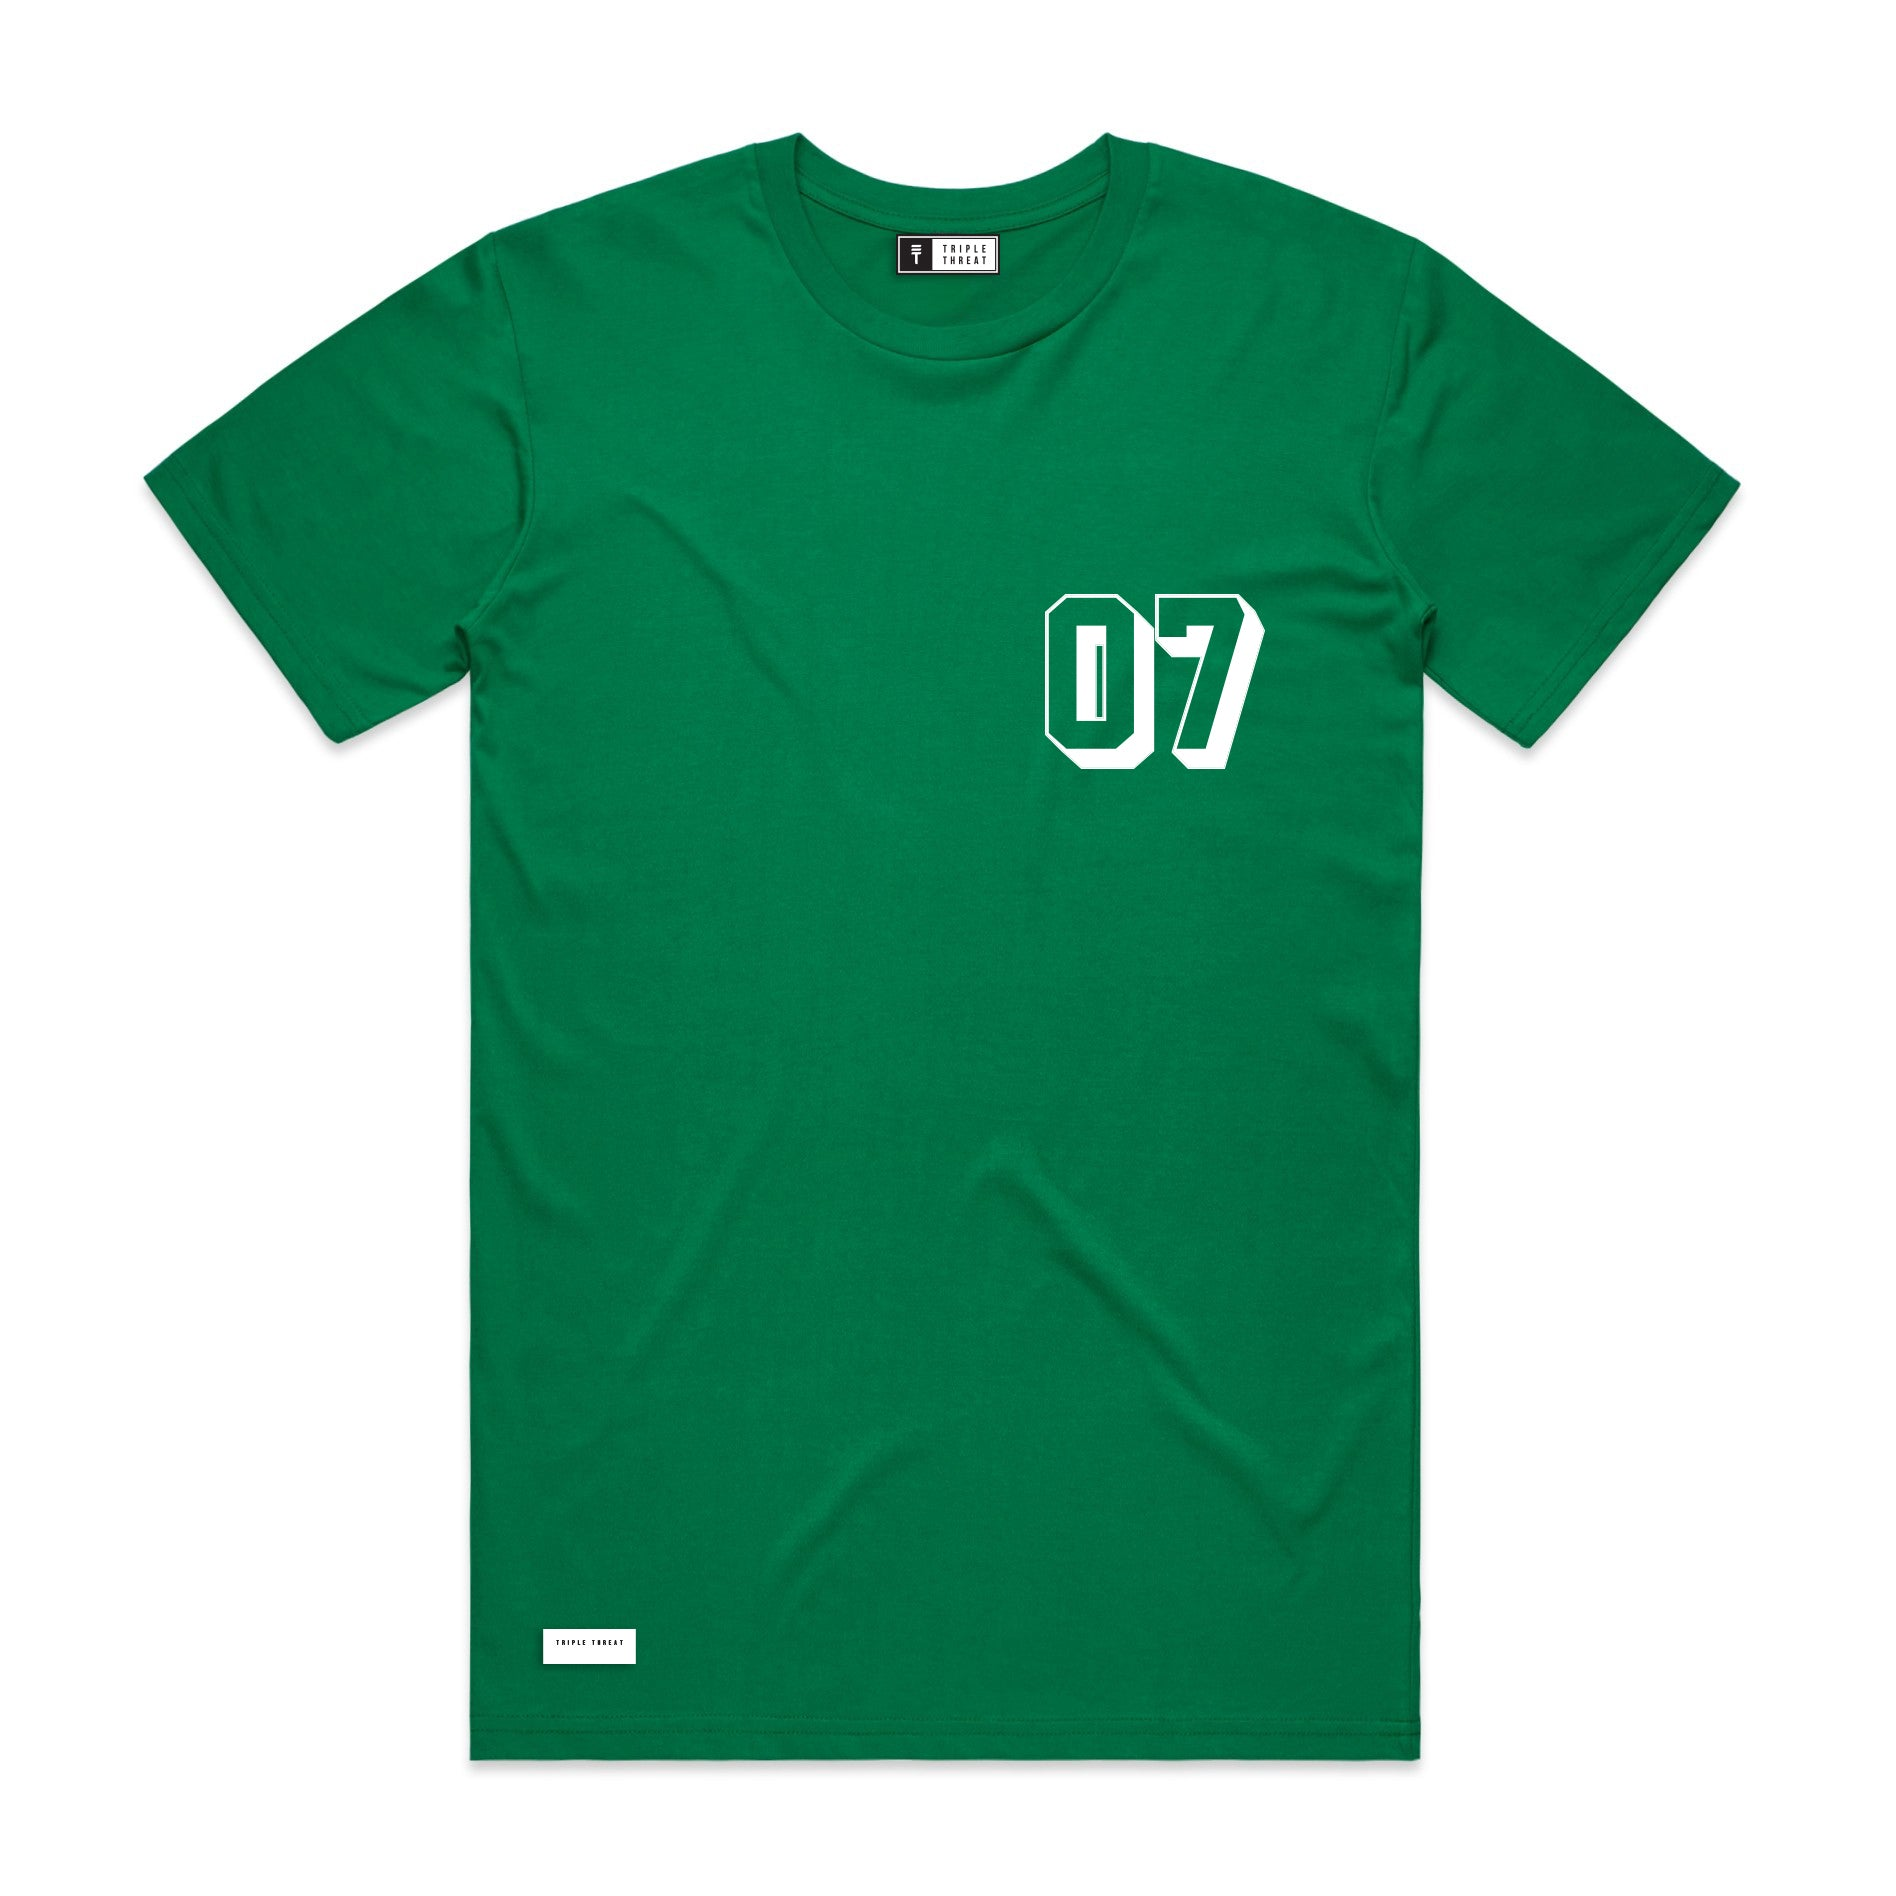 ALL STAR T-SHIRT - GREEN & WHITE